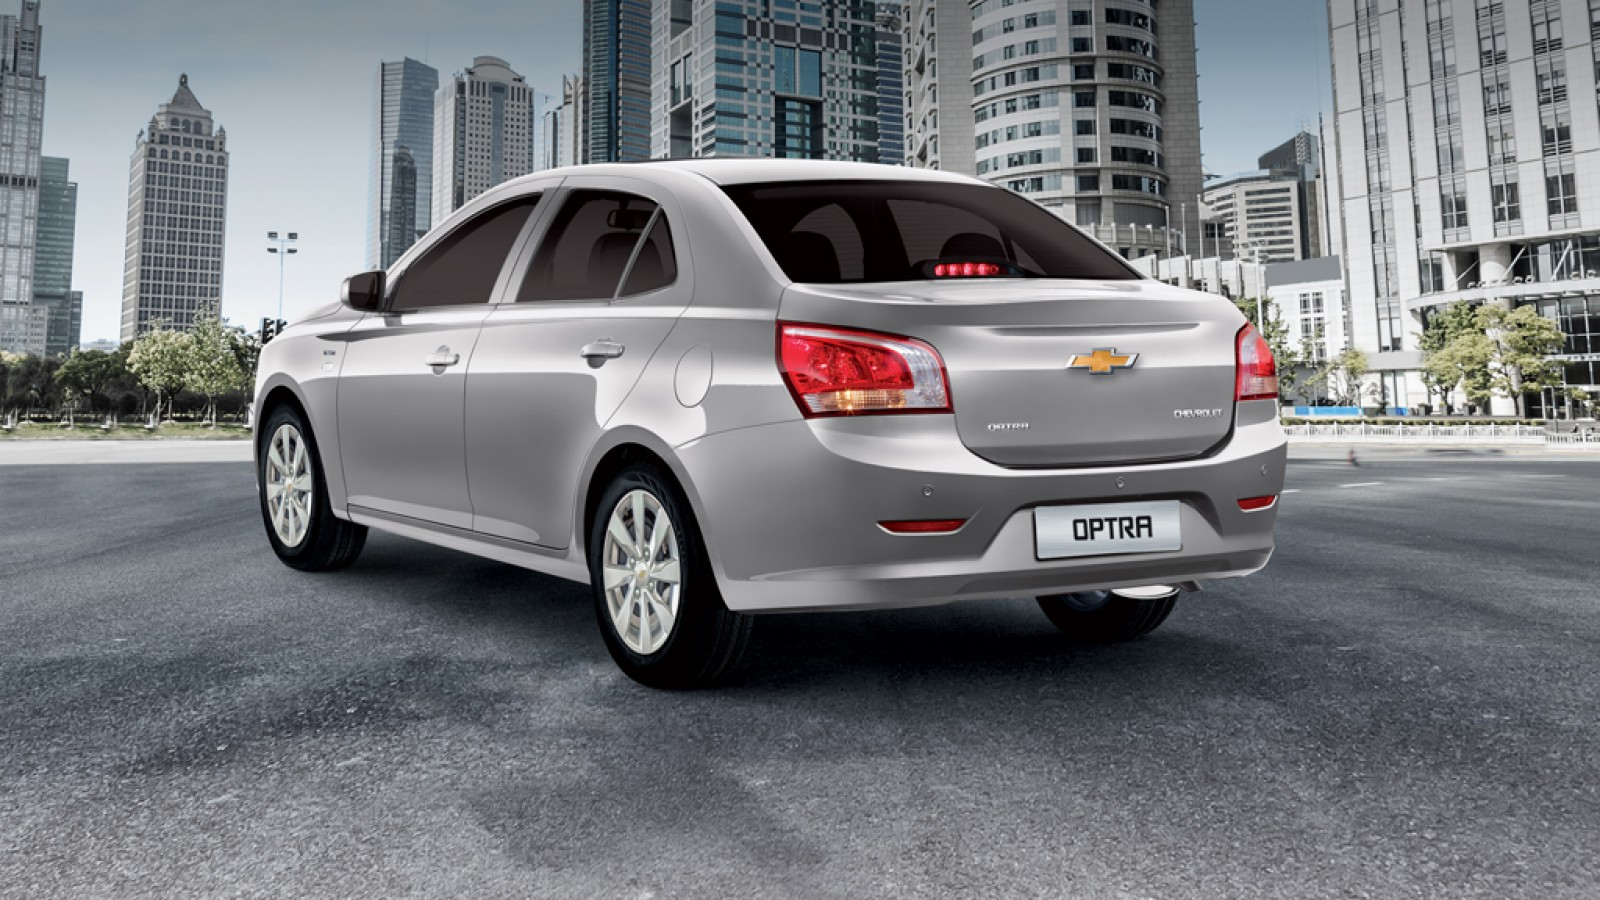 Chevrolet Optra 2018 1.5L Luxury in Egypt: New Car Prices ...